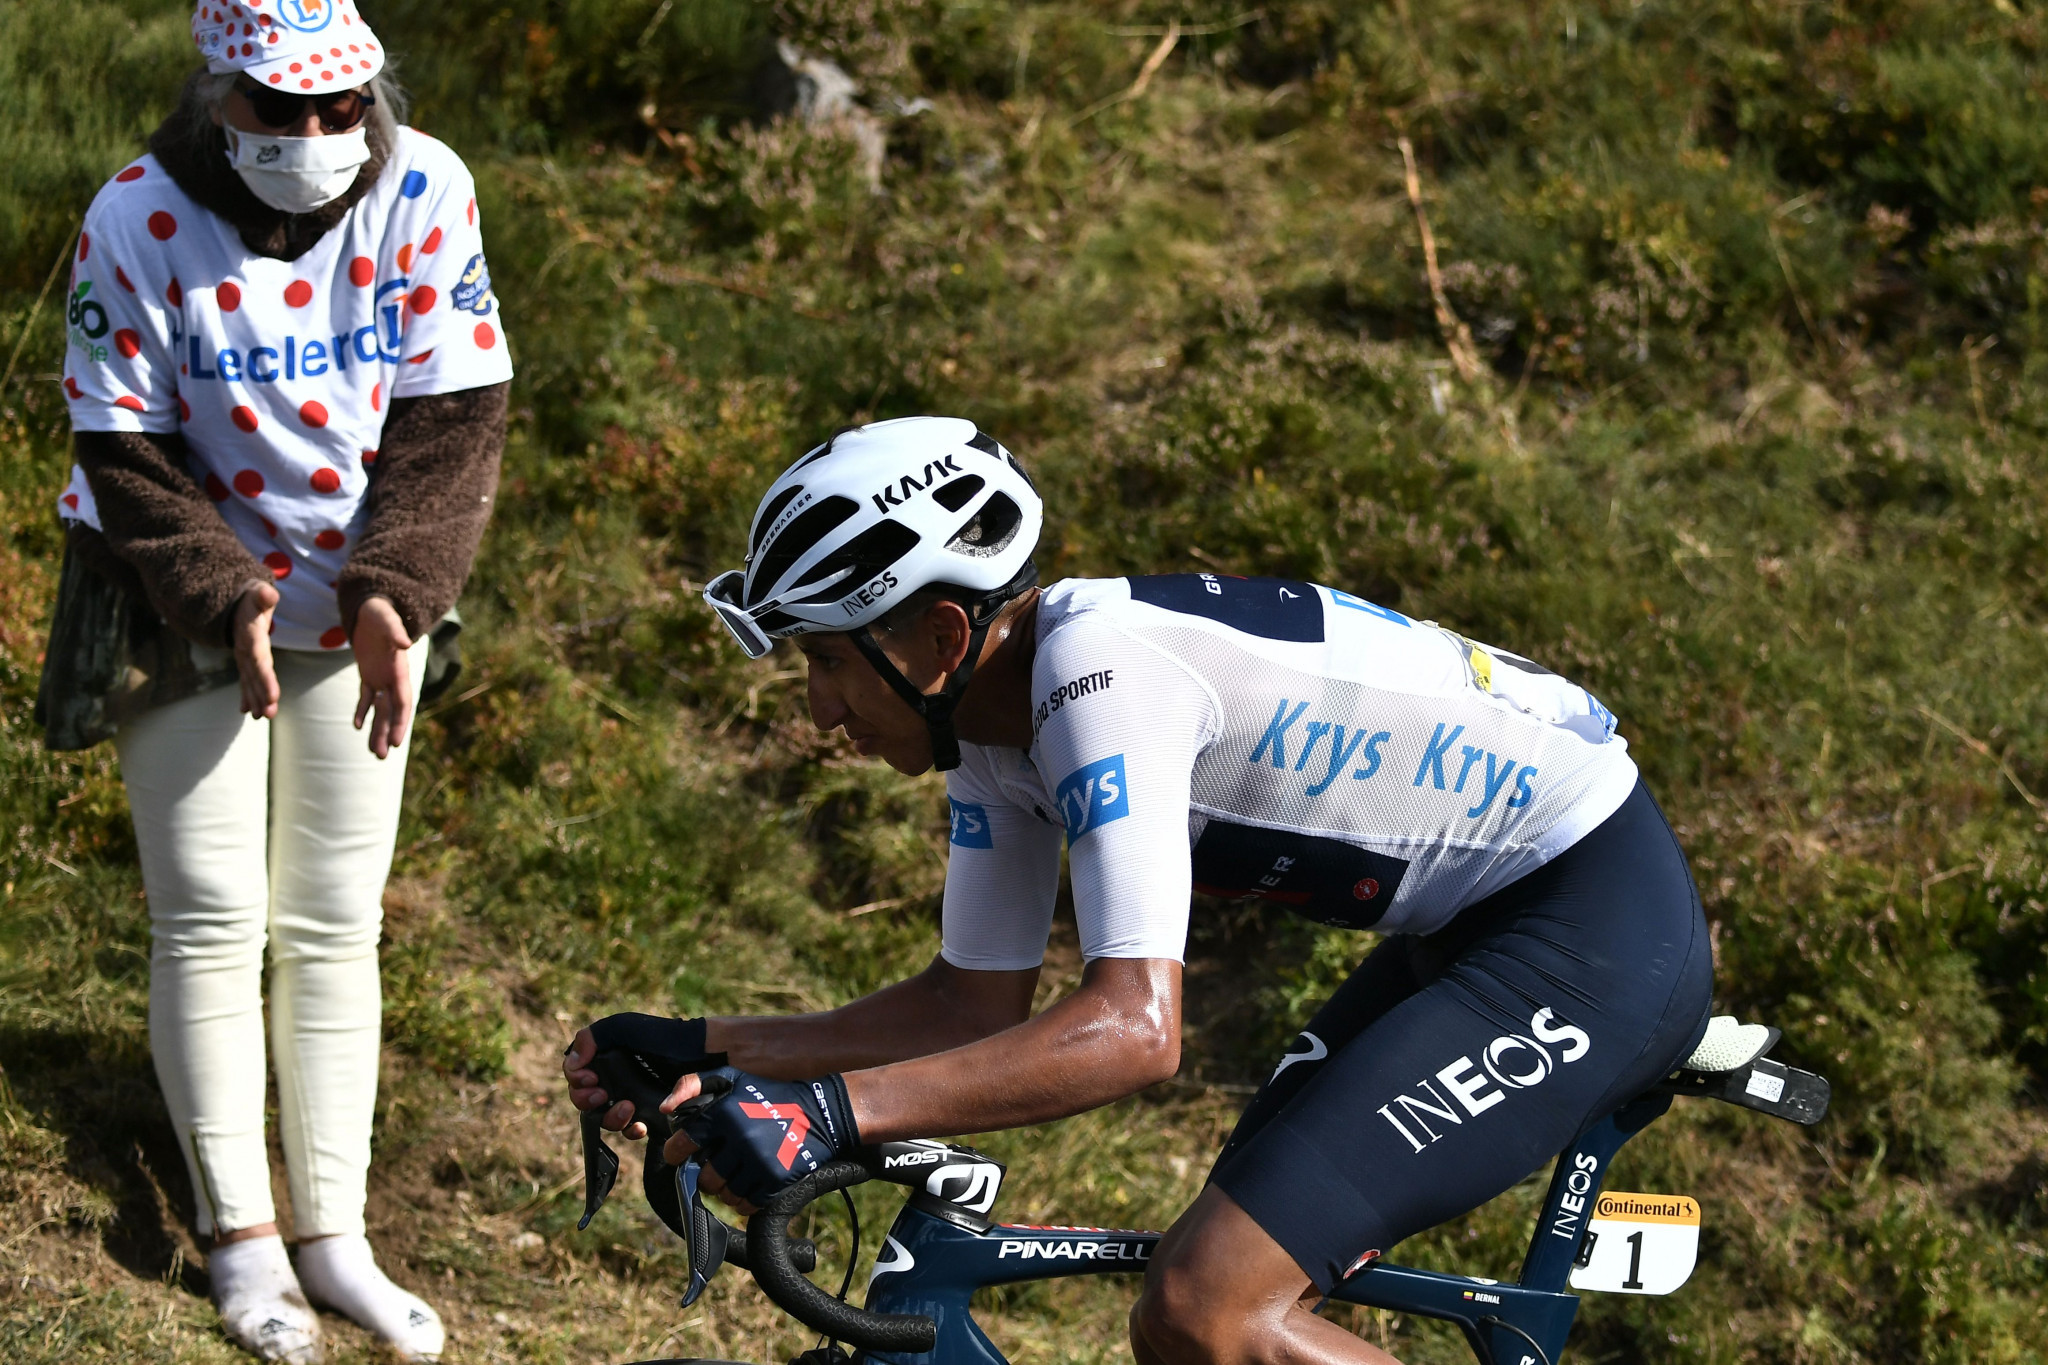 Defending champion Egan Bernal lost 38 seconds to Roglič and Pogačar ©Getty Images